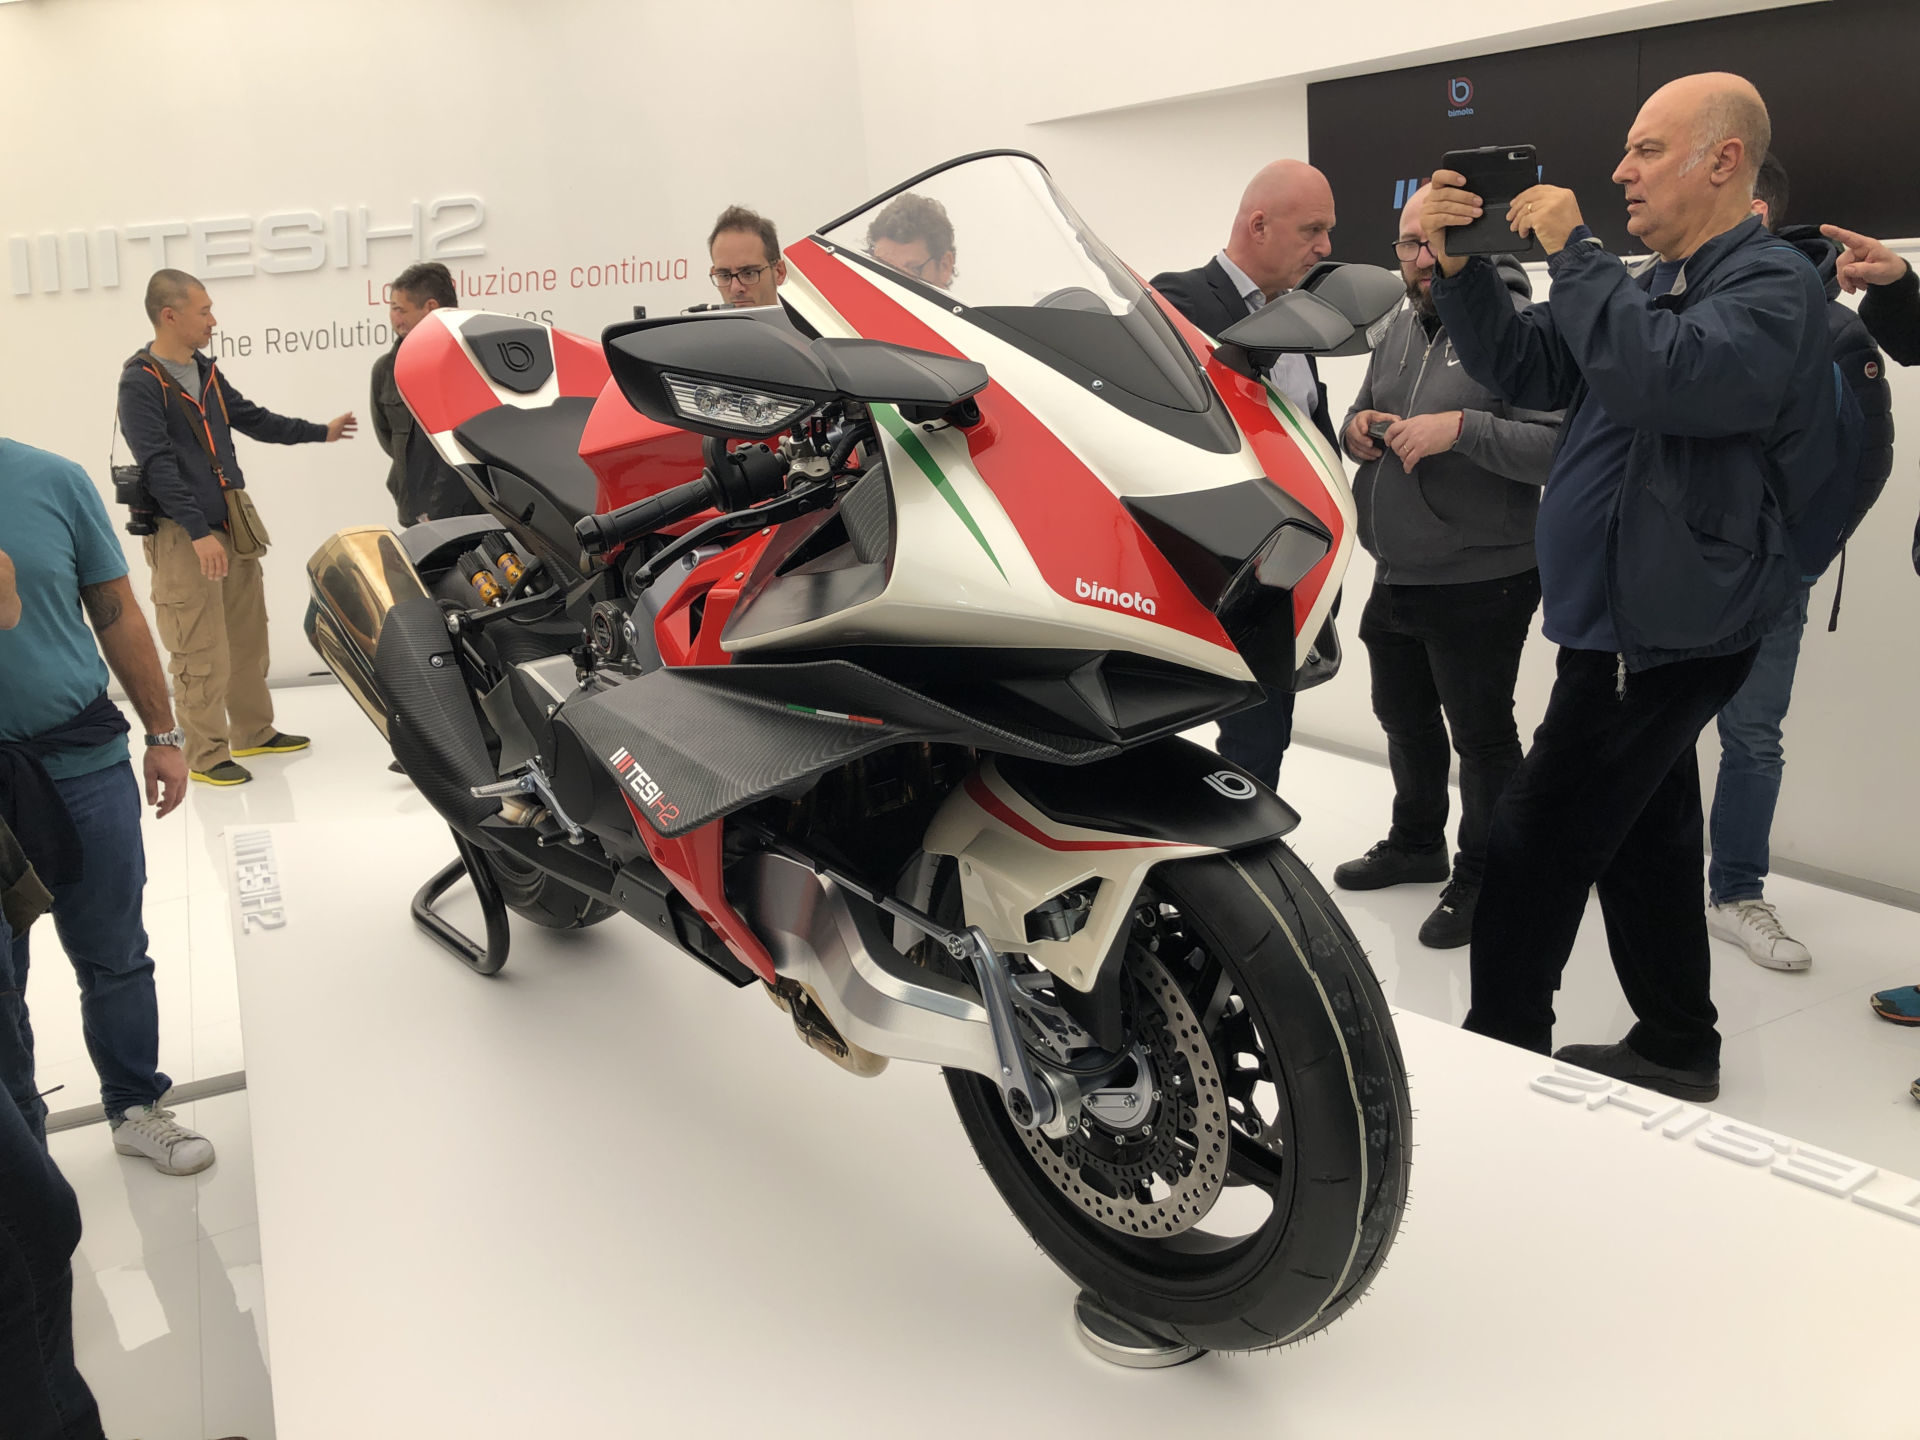 A Bimota Kawasaki TESI H2 Concept bike on display at the EICMA show in Milan, Italy. Photo courtesy of Kawasaki UK.